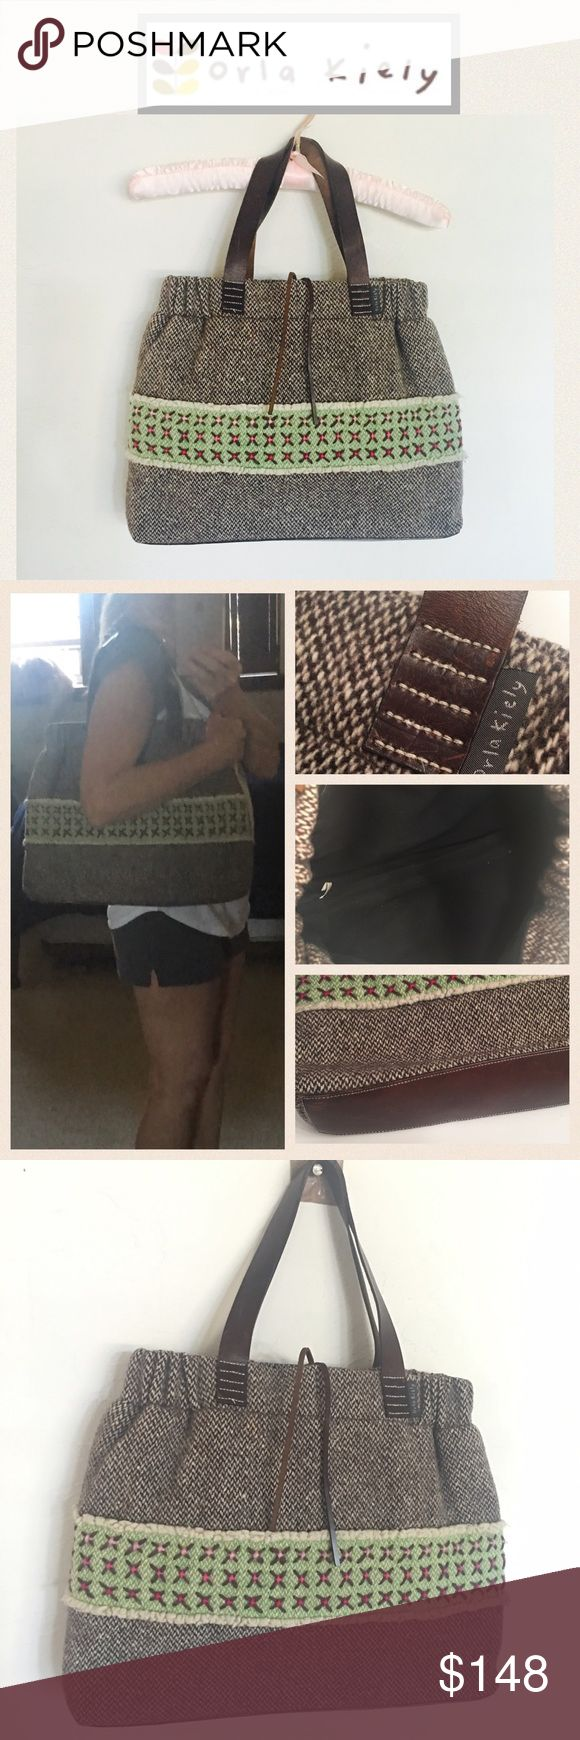 """Orla Kiely Wool Bag Grab this quick! Are you a collector or lover of unique and rare bags? This spacious designer bag is done in a gray tweed wool with green pattern, leather handles, closure tie and leather bottom. Clean black interior with zip pocket. Measures approx 17"""" x 13"""" EUC  Orla Kiely Bags"""